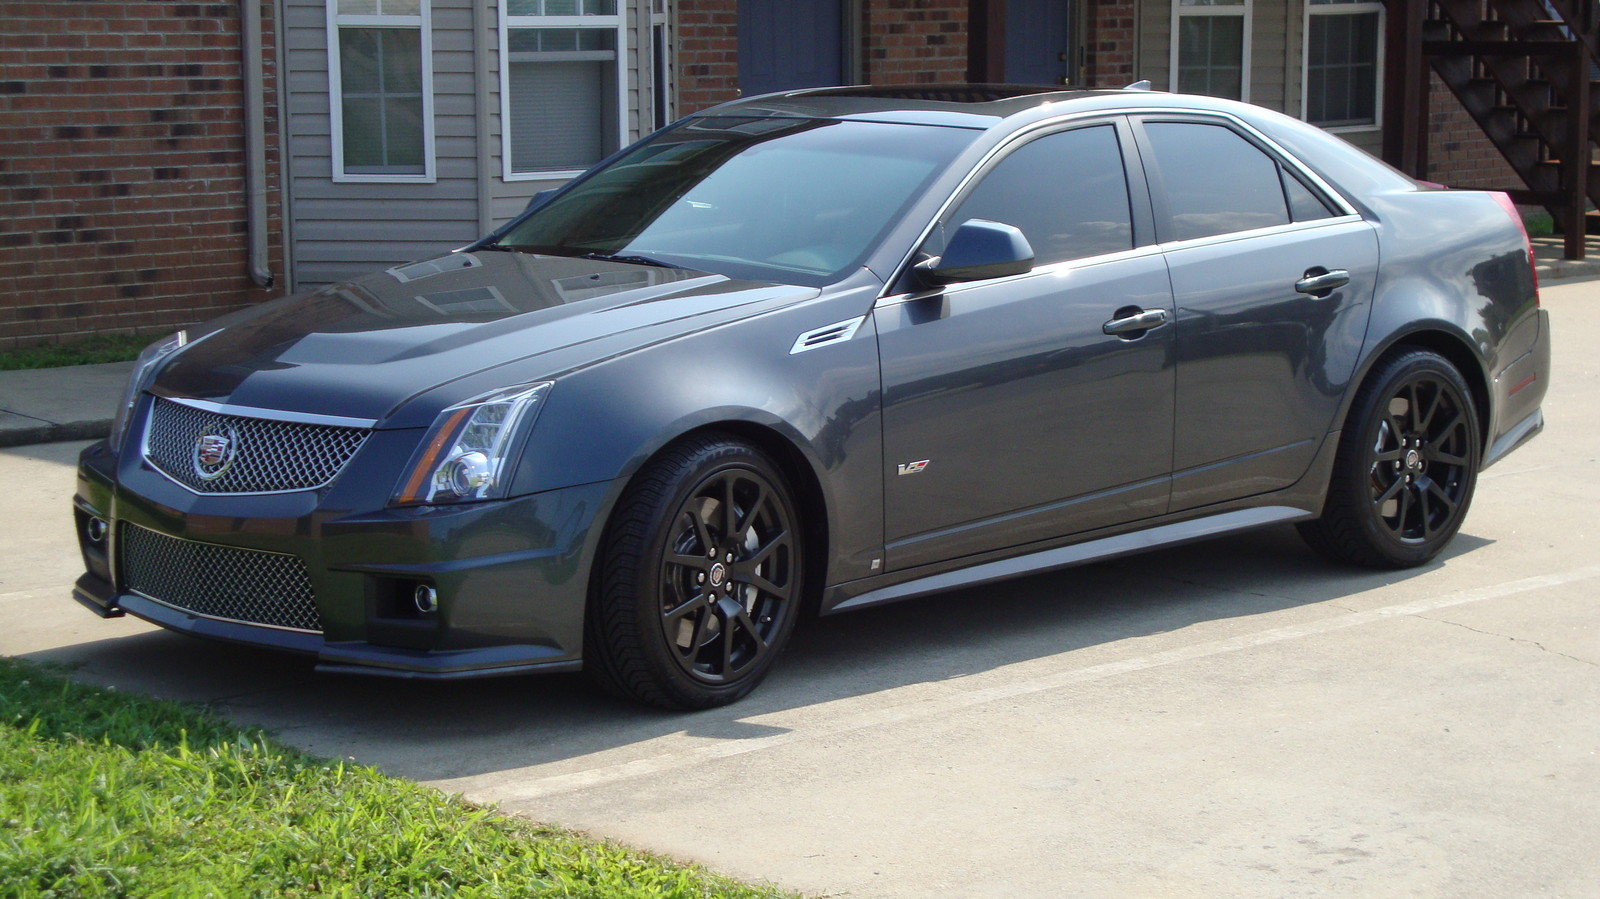 2009 Cadillac Cts V 1 4 Mile Drag Racing Timeslip Specs 0 60 Dragtimes Com